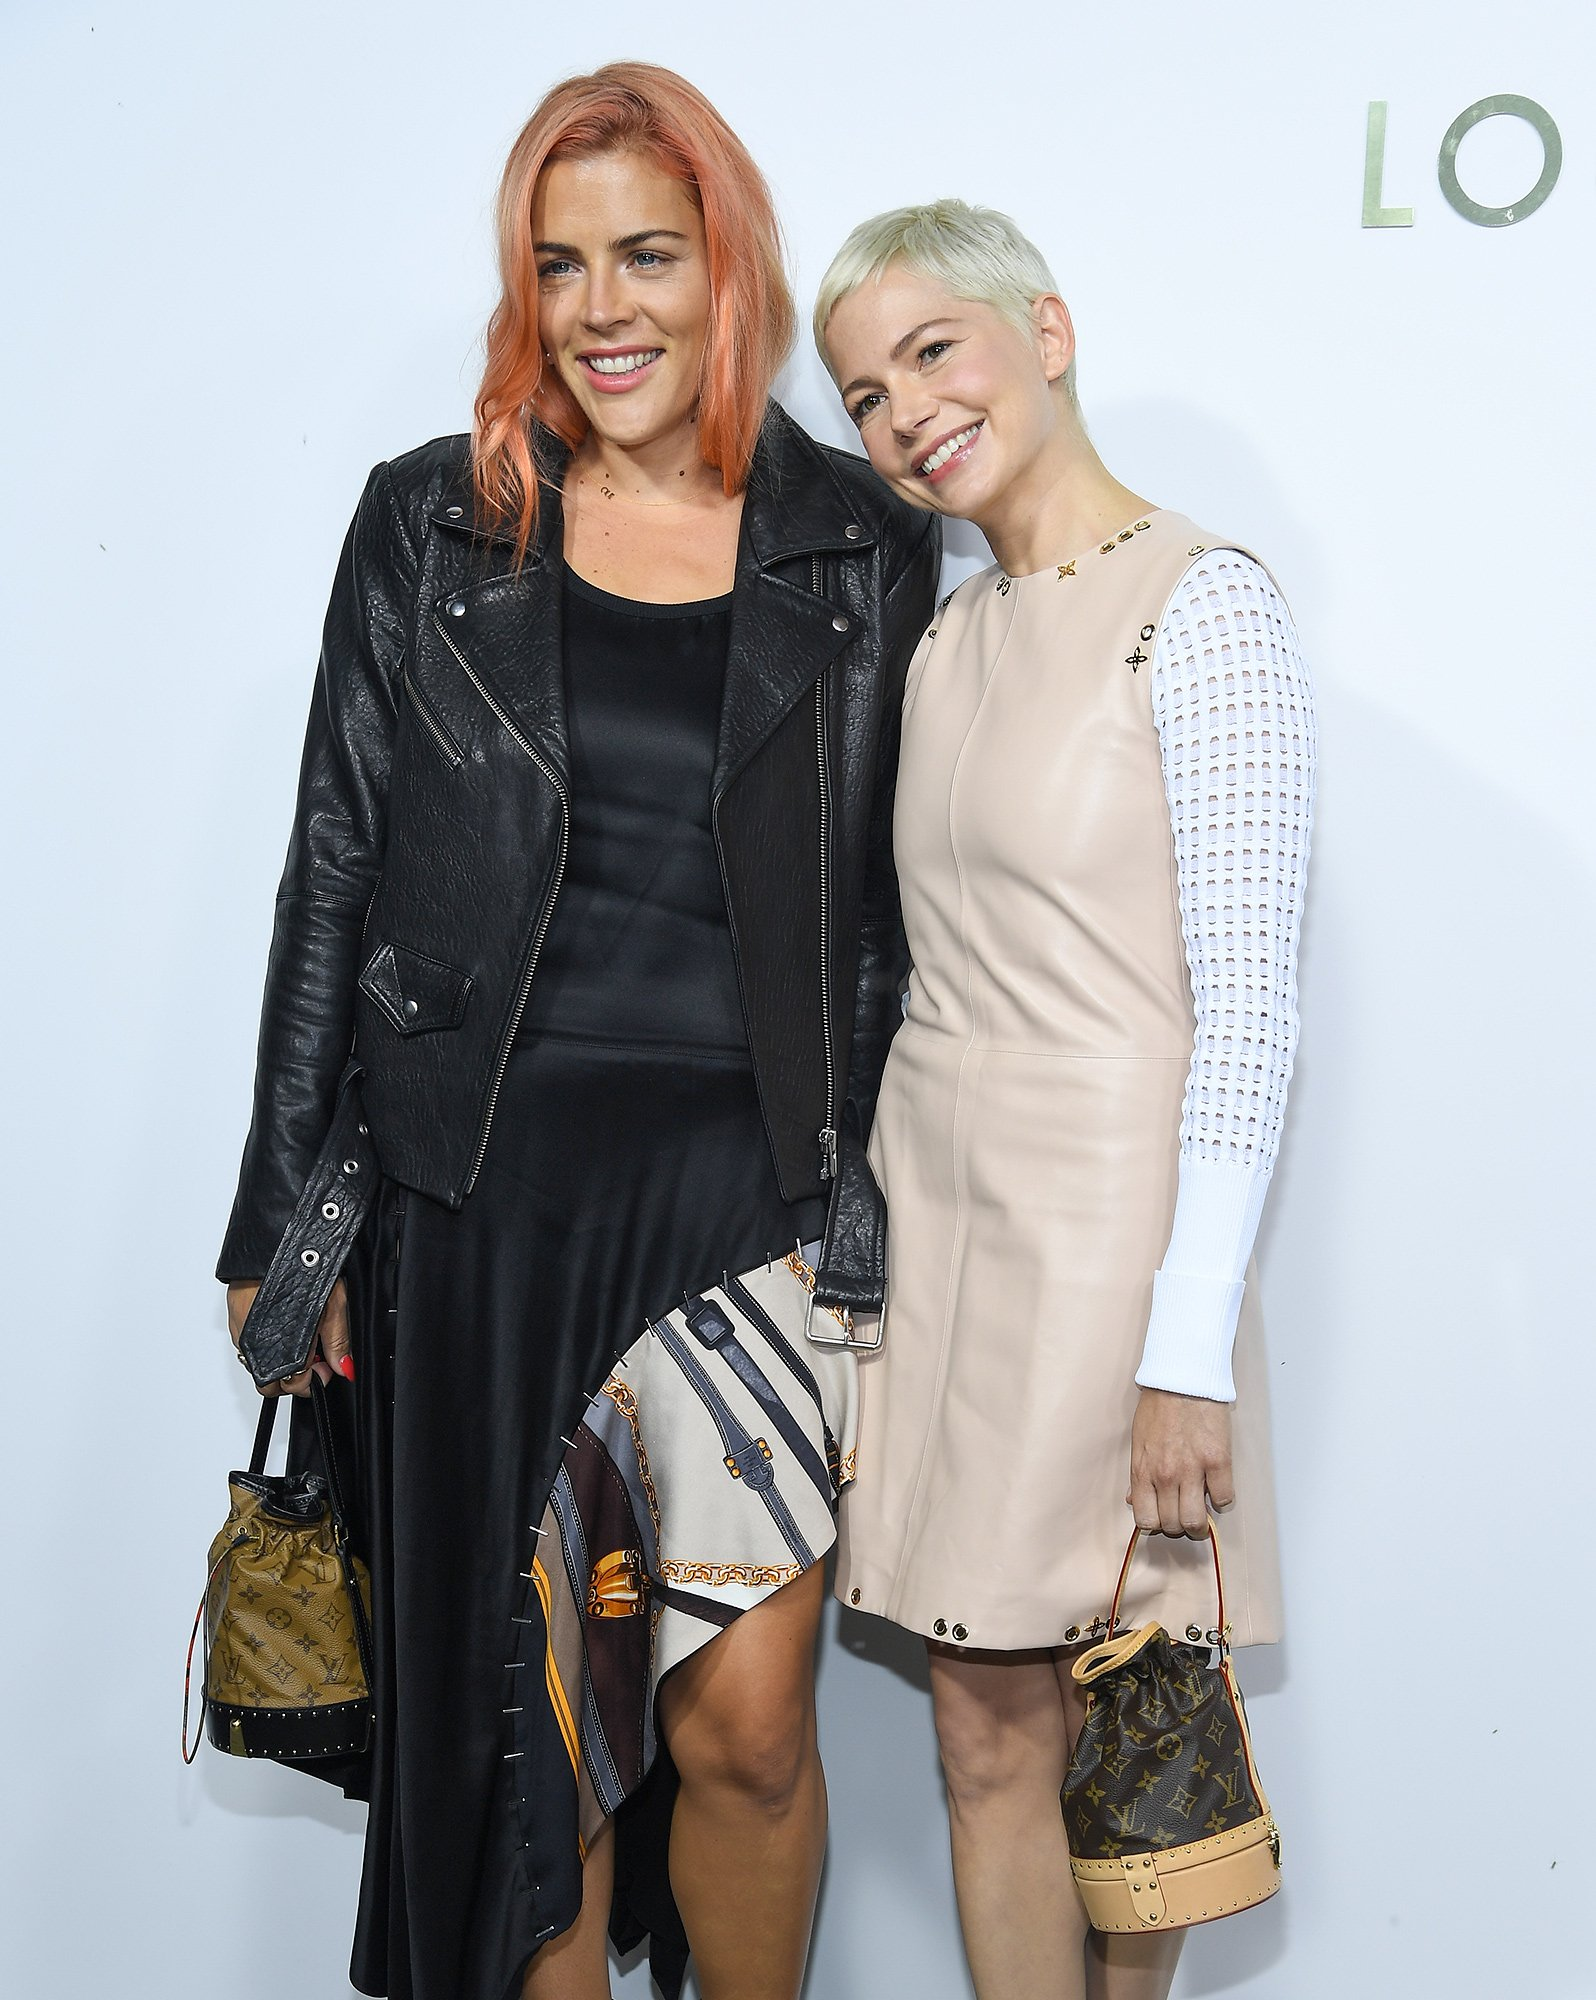 Busy Philipps and Michelle Williams: The Sweetest Moments of Their Amazing Friendship